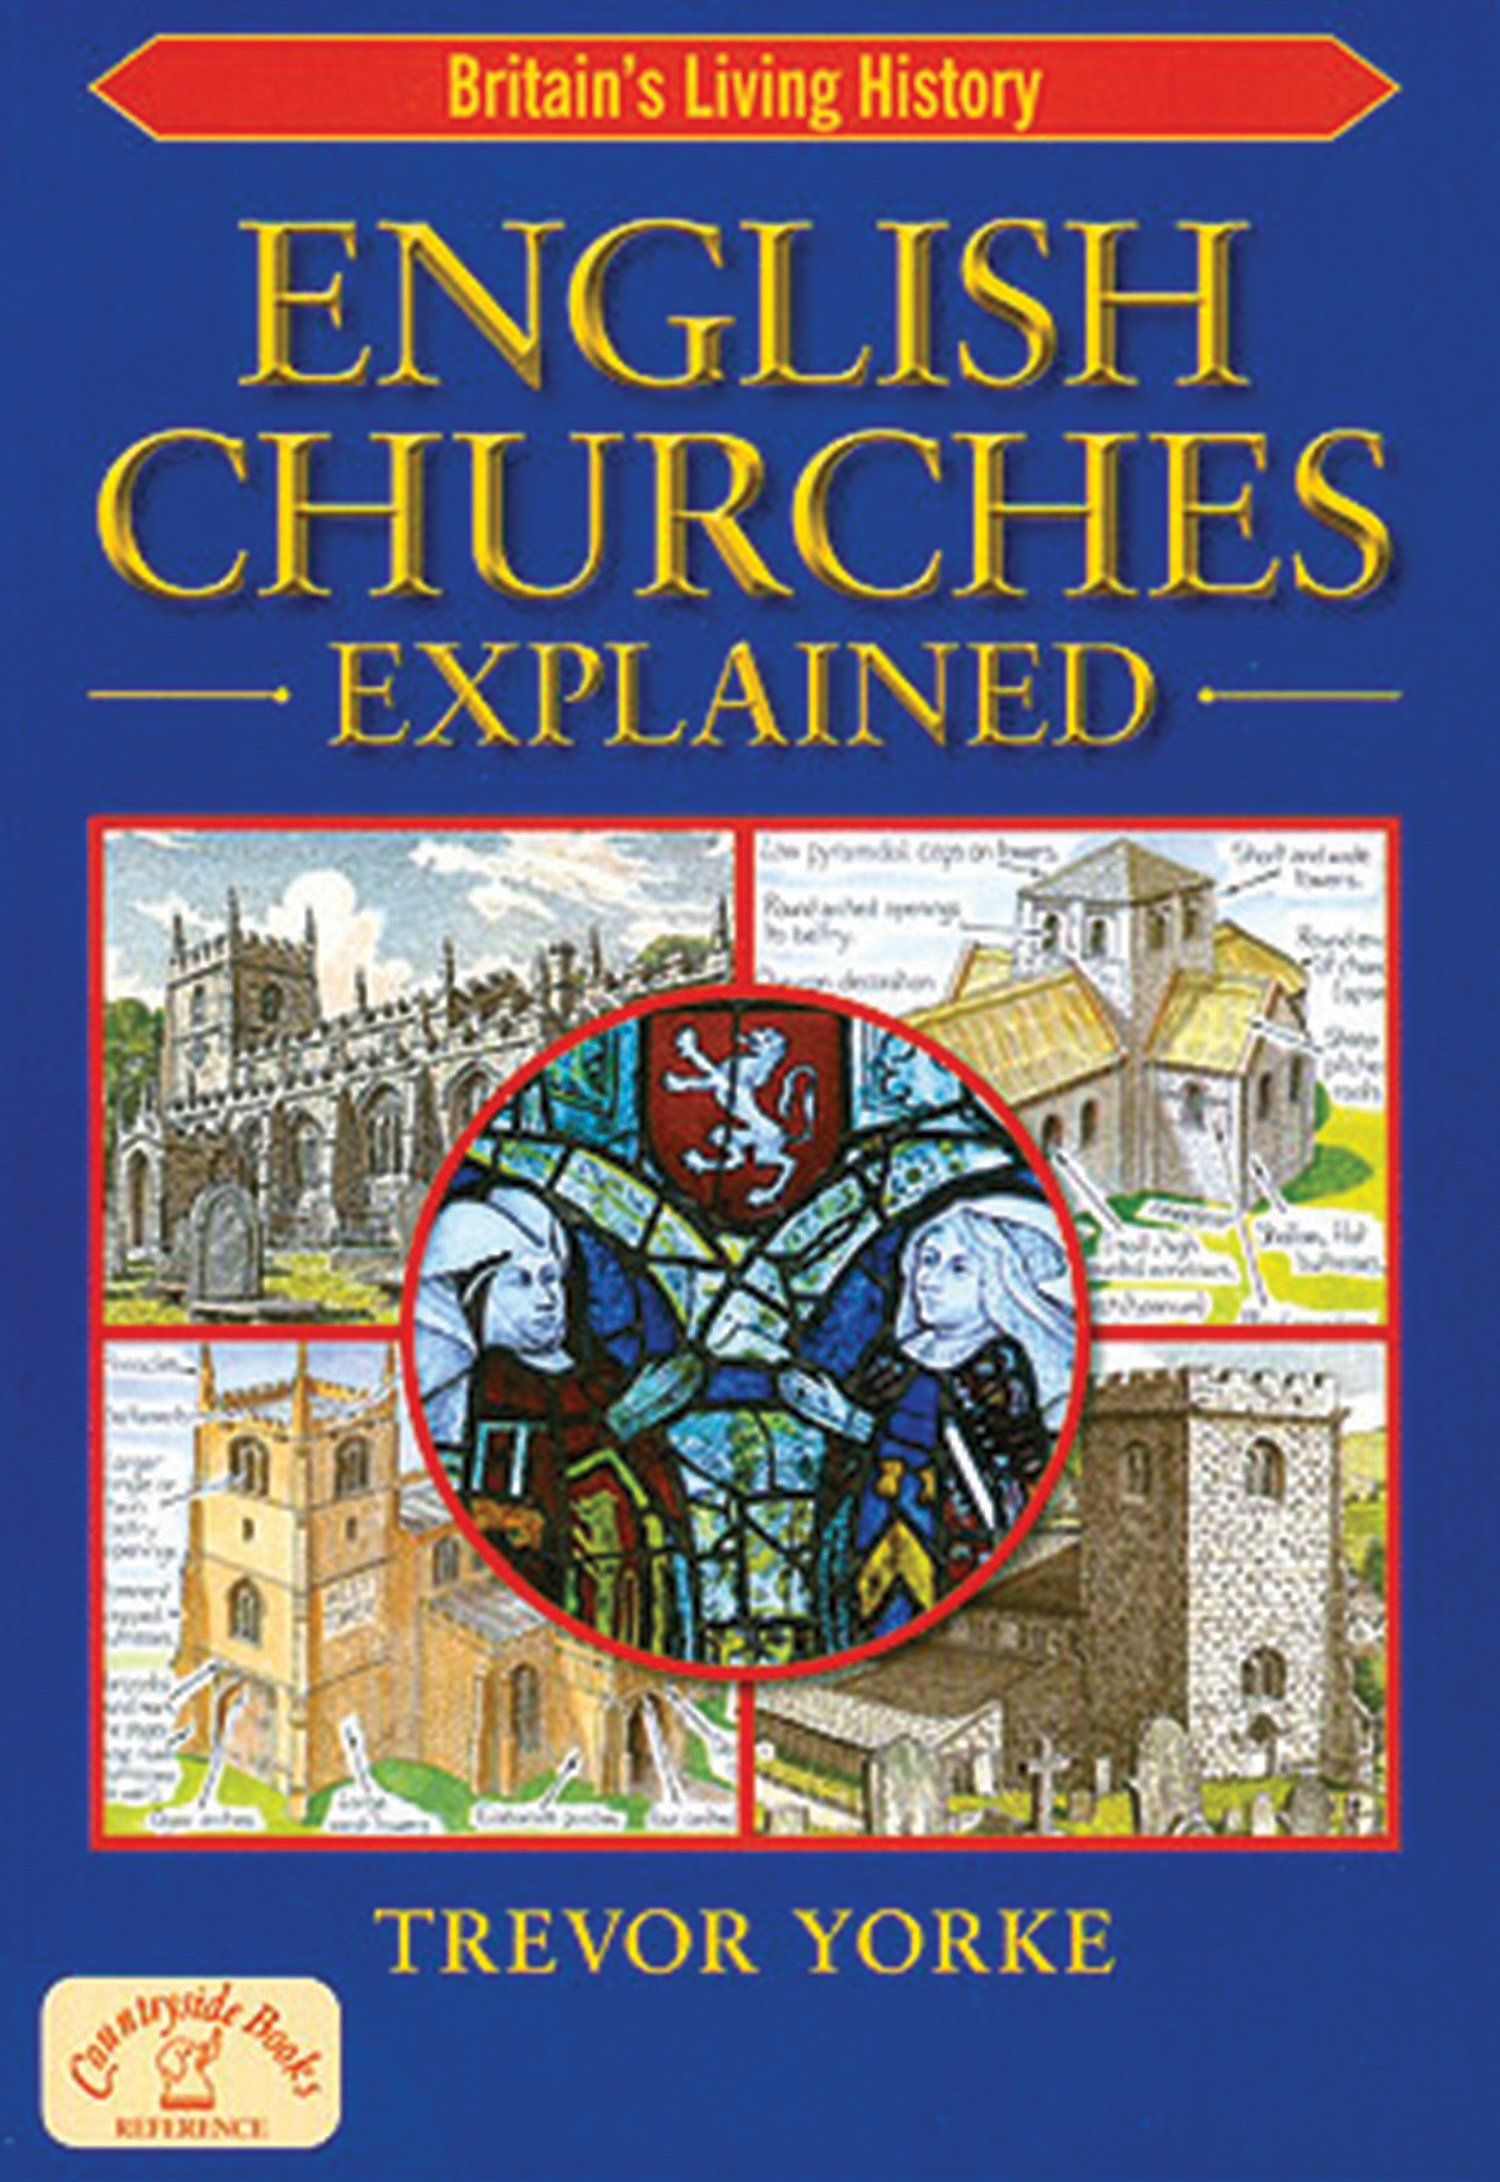 English Churches Explained (Britain's Living History)